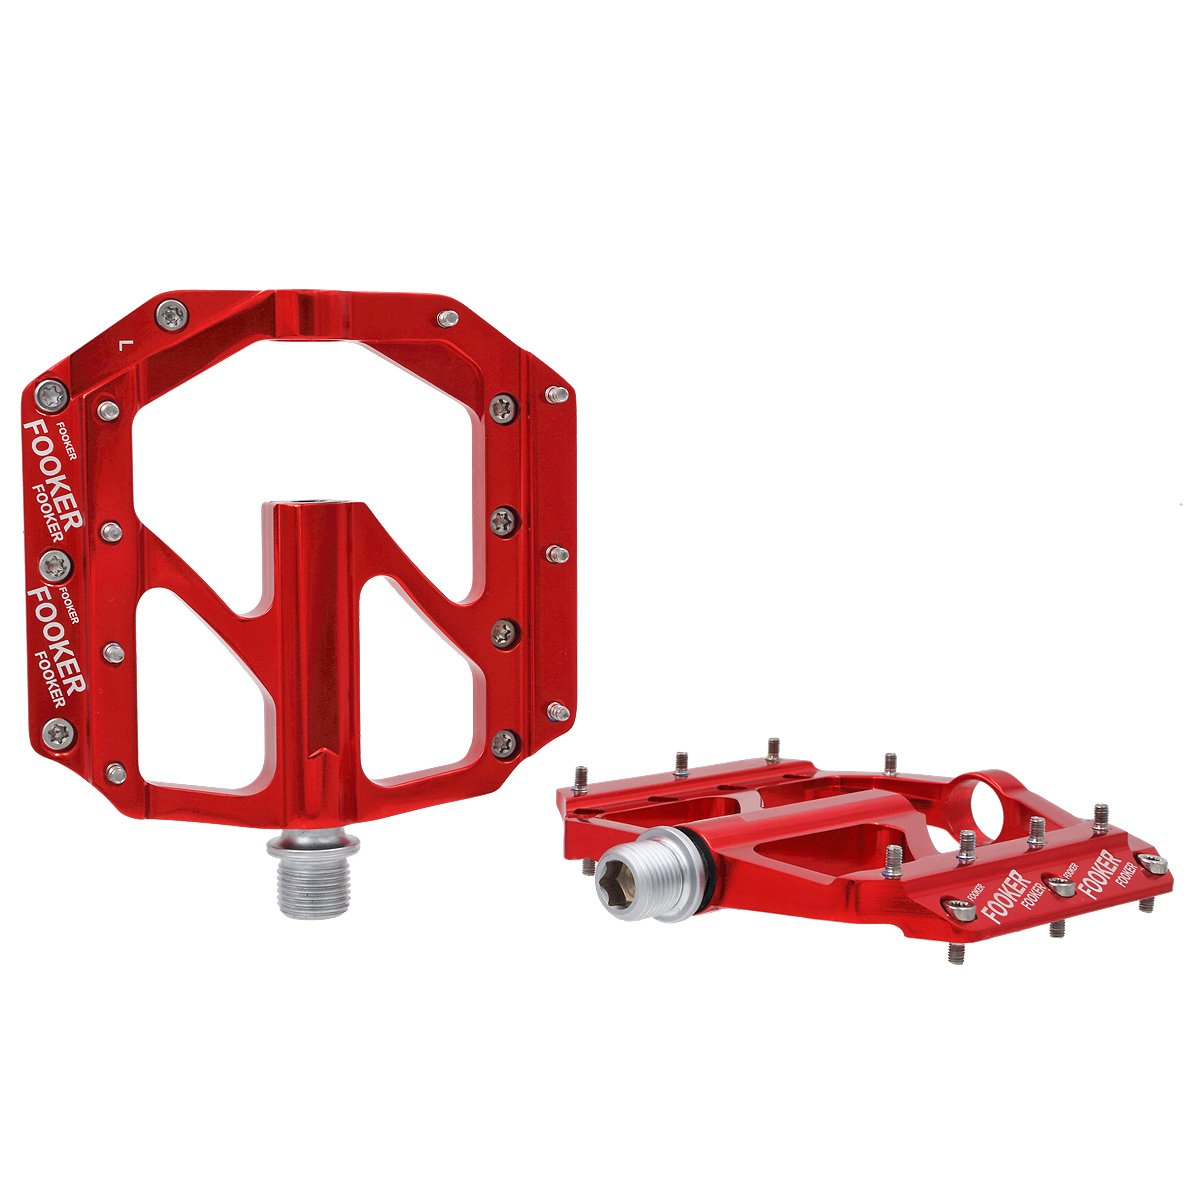 FOOKER Bike Pedals Non-Slip Aluminum Alloy MTB Mountain Bike Pedals 3 Bearing 9/16'' for Road BMX MTB Fixie Bikes by FOOKER (Image #2)